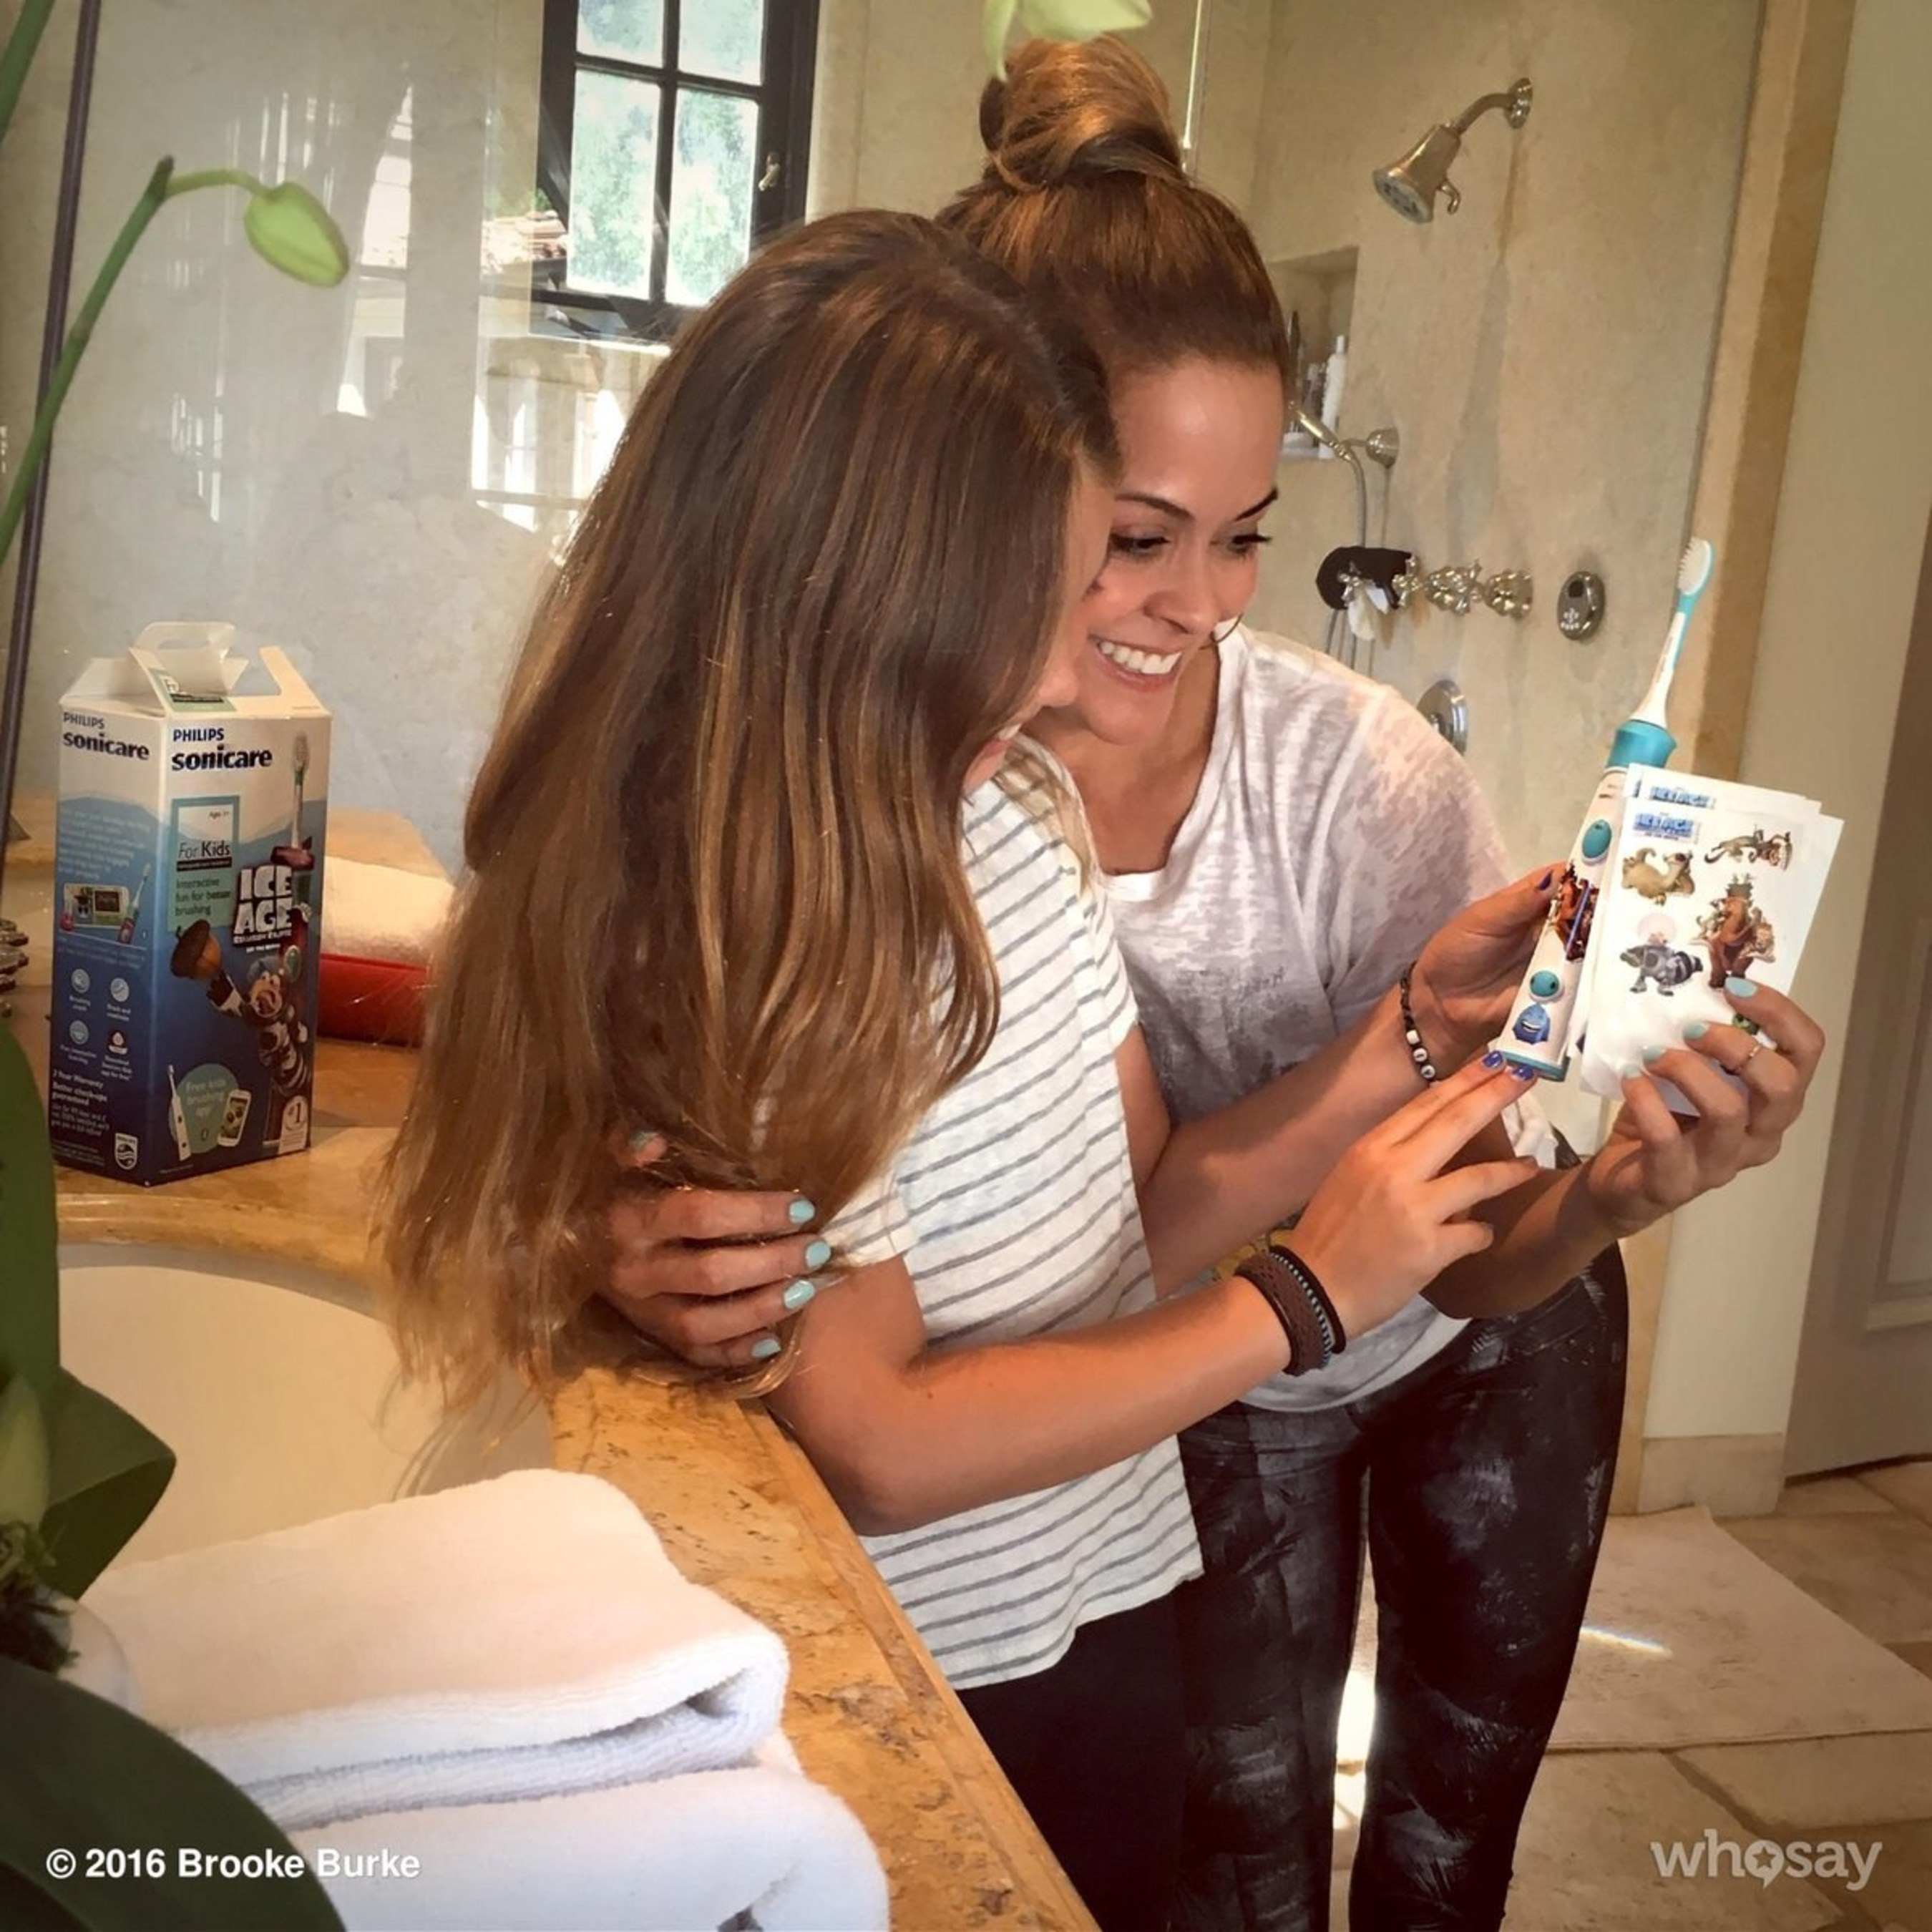 Brooke Burke Encourages her Daughter to Develop Healthy Habits for Life with Philips Sonicare For Kids Ice Age: Collision Course